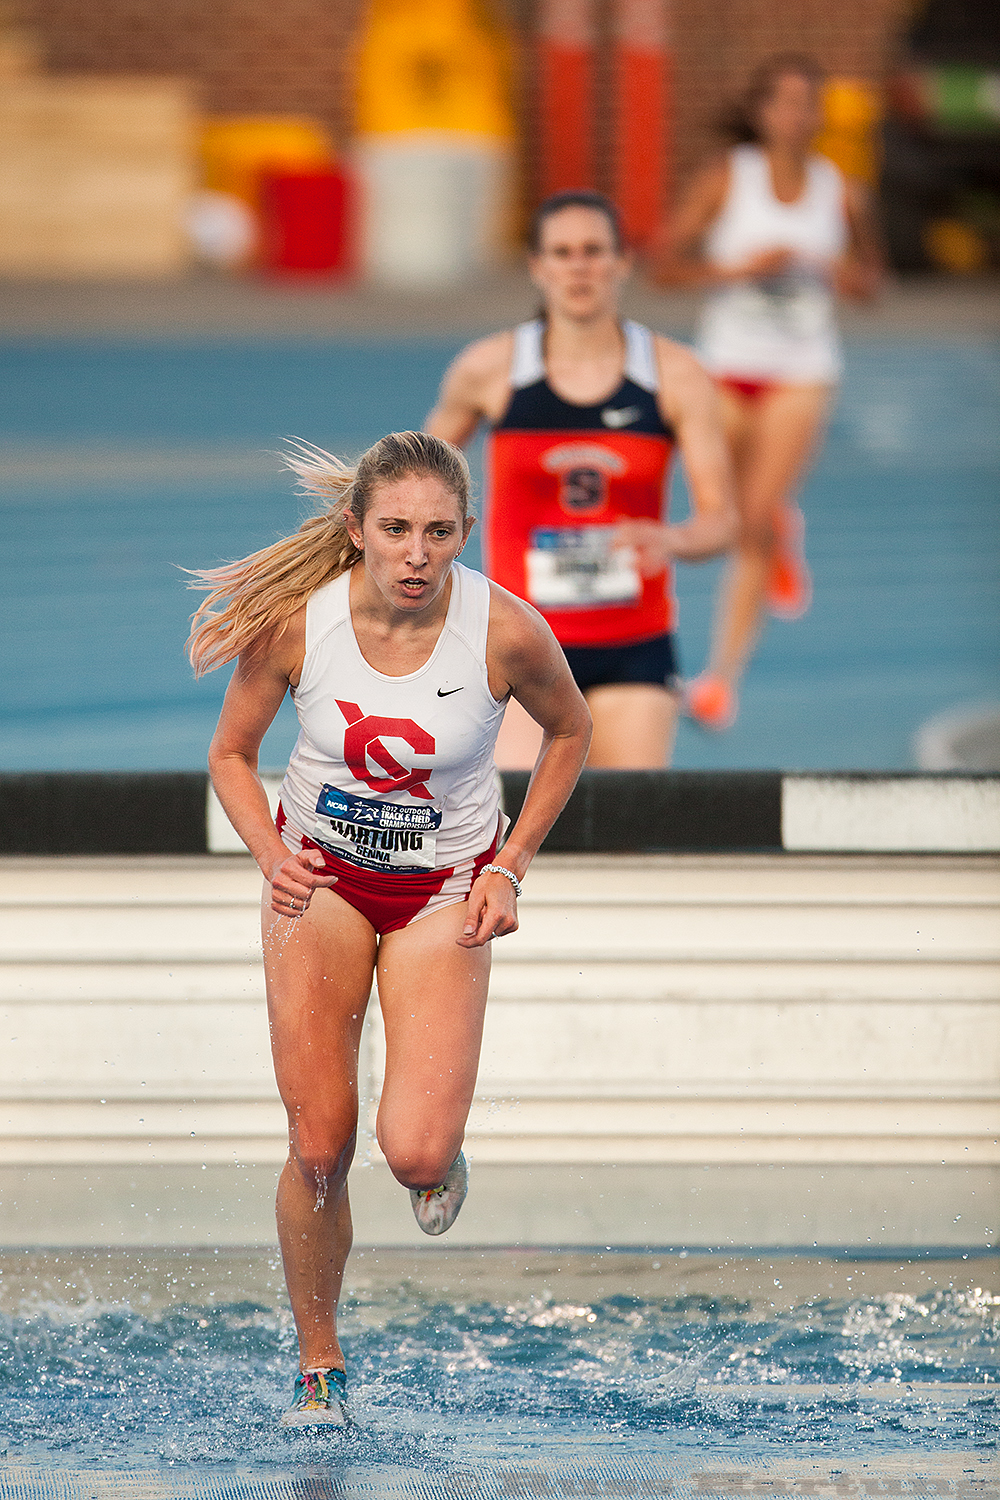 Genna Hartung clearing the water hurdle at the 2012 NCAA Division 1 Outdoor National Championships in Des Moines, Iowa.